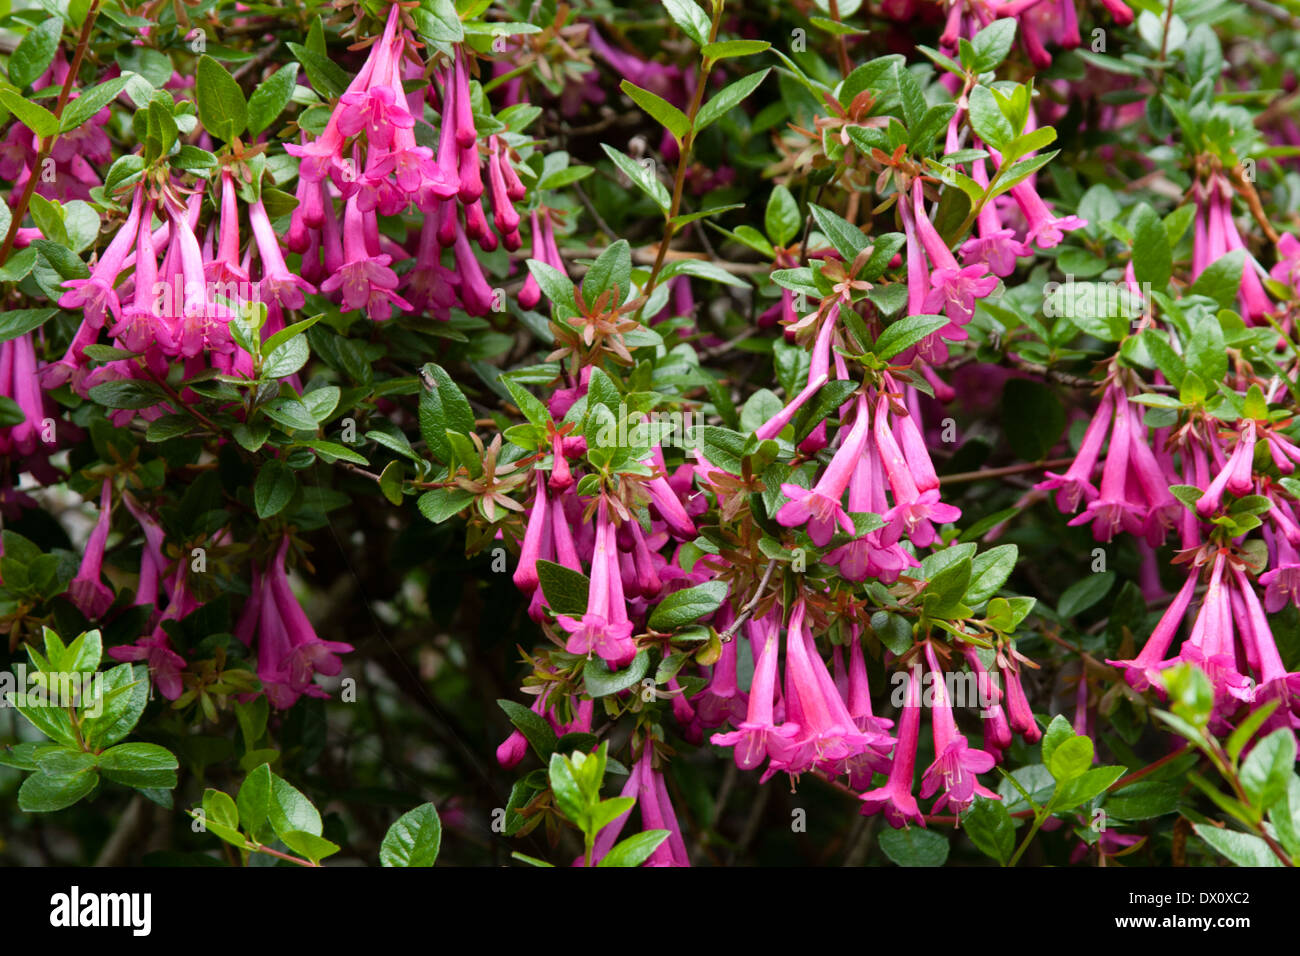 The choice, lax growing wall shrub, Abelia floribunda, needs a warm wall to thrive in the UK - Stock Image